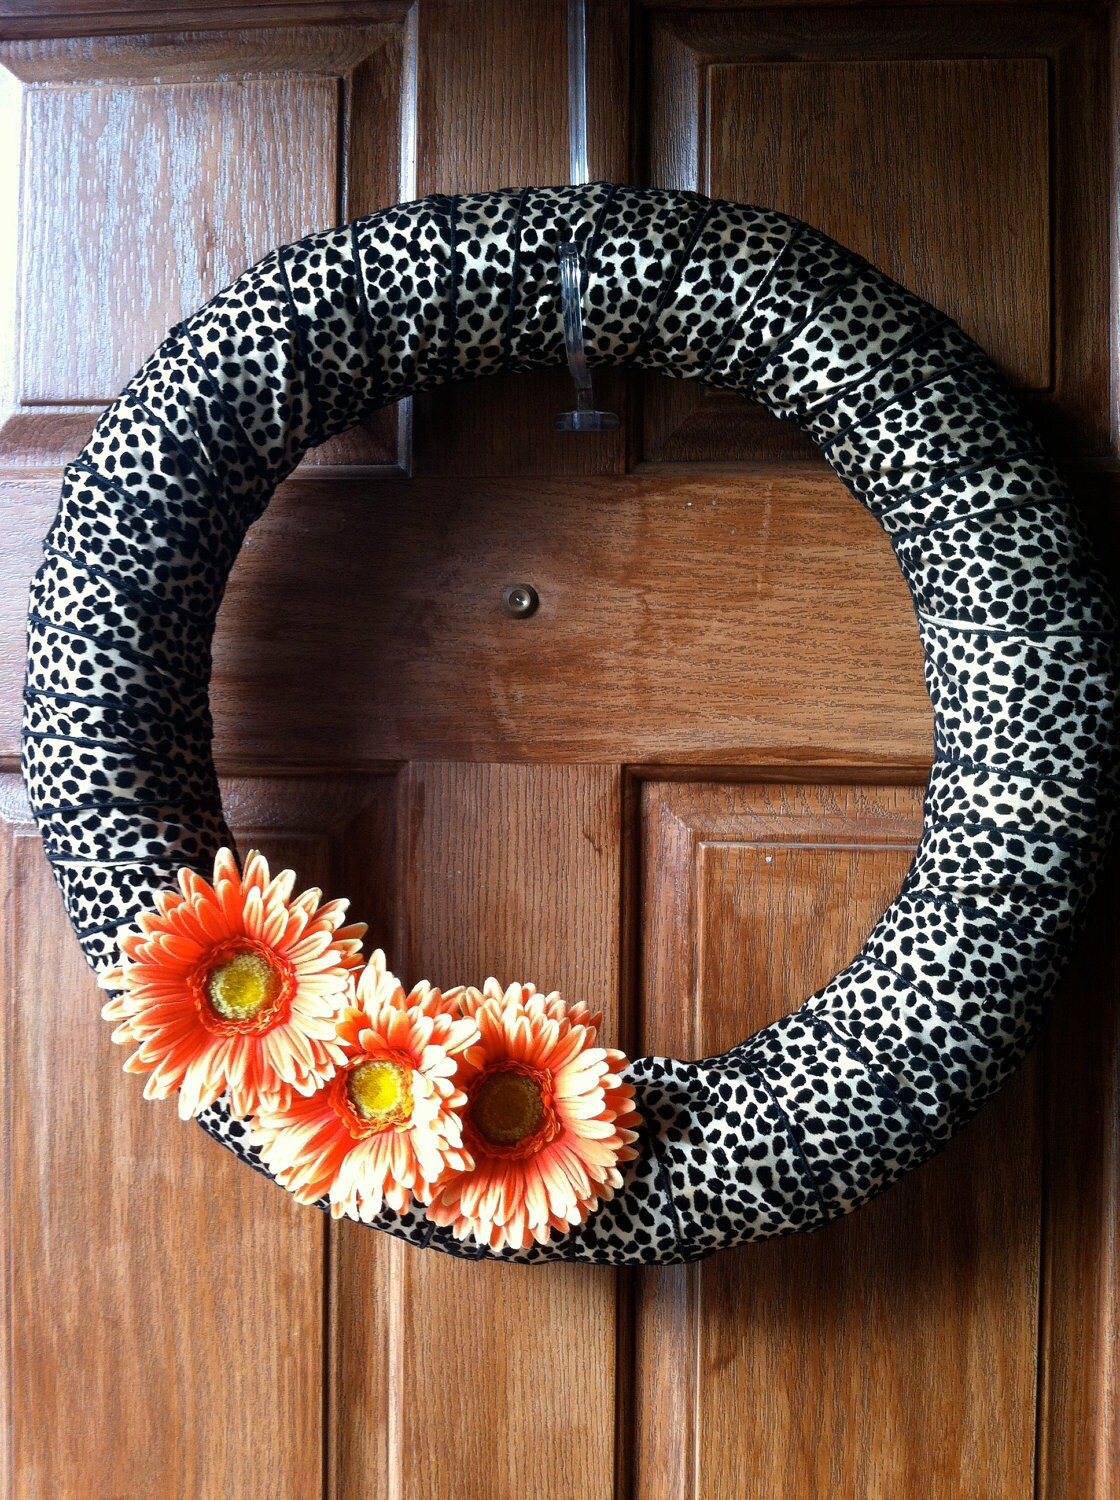 Cheetah and Orange Sunflower Wreath